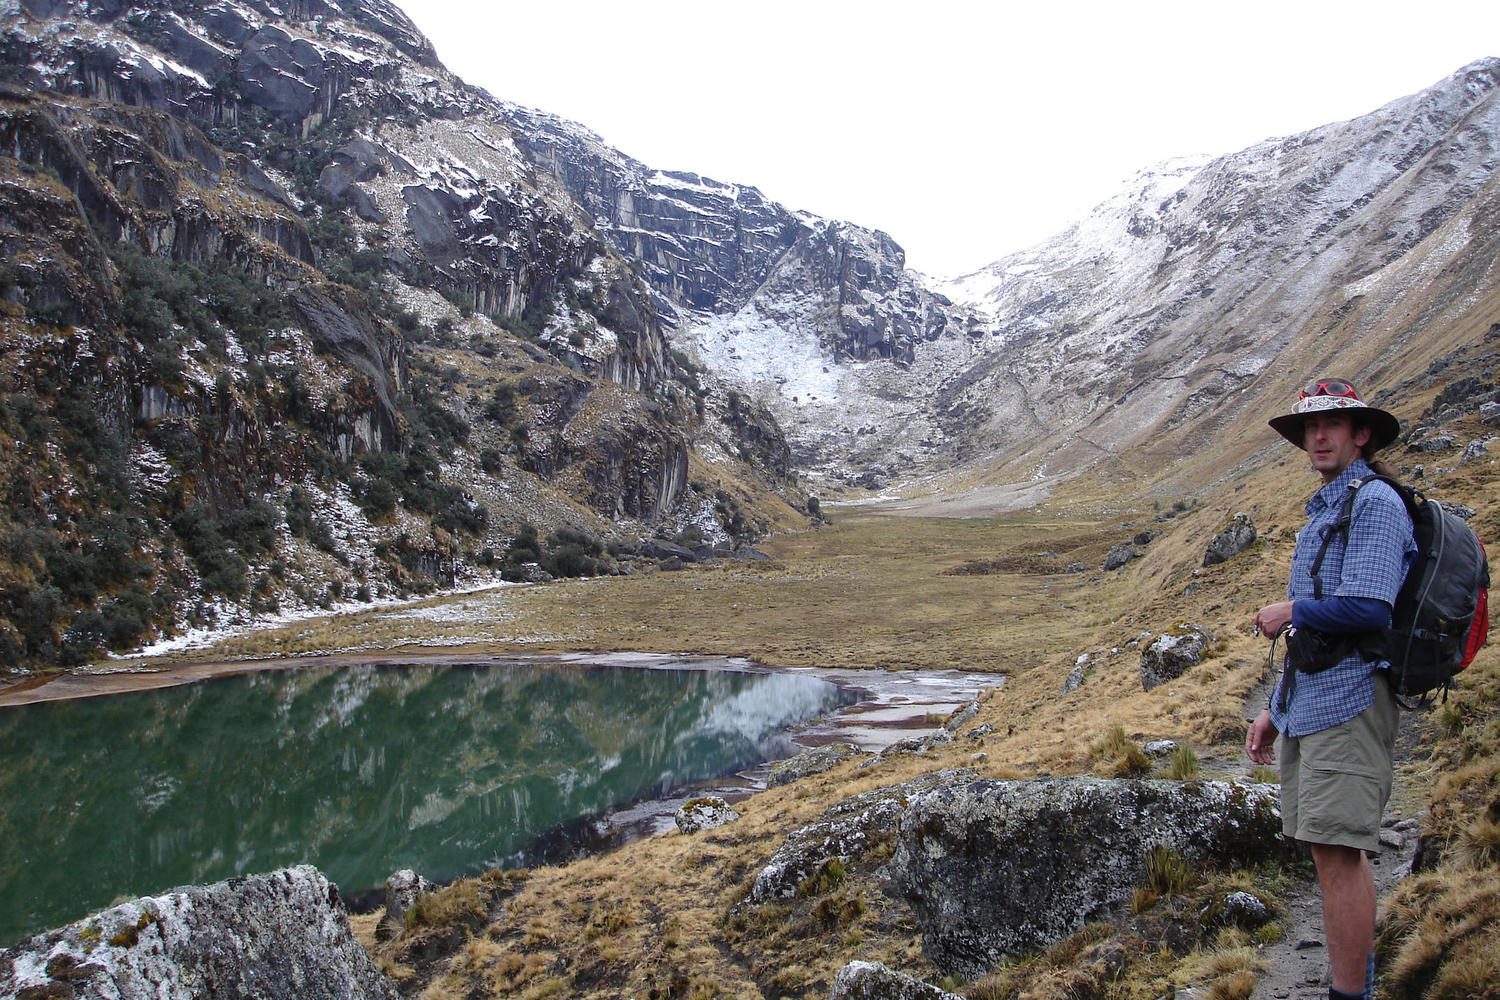 Hike past lakes and snowy peaks on the Lares Trail